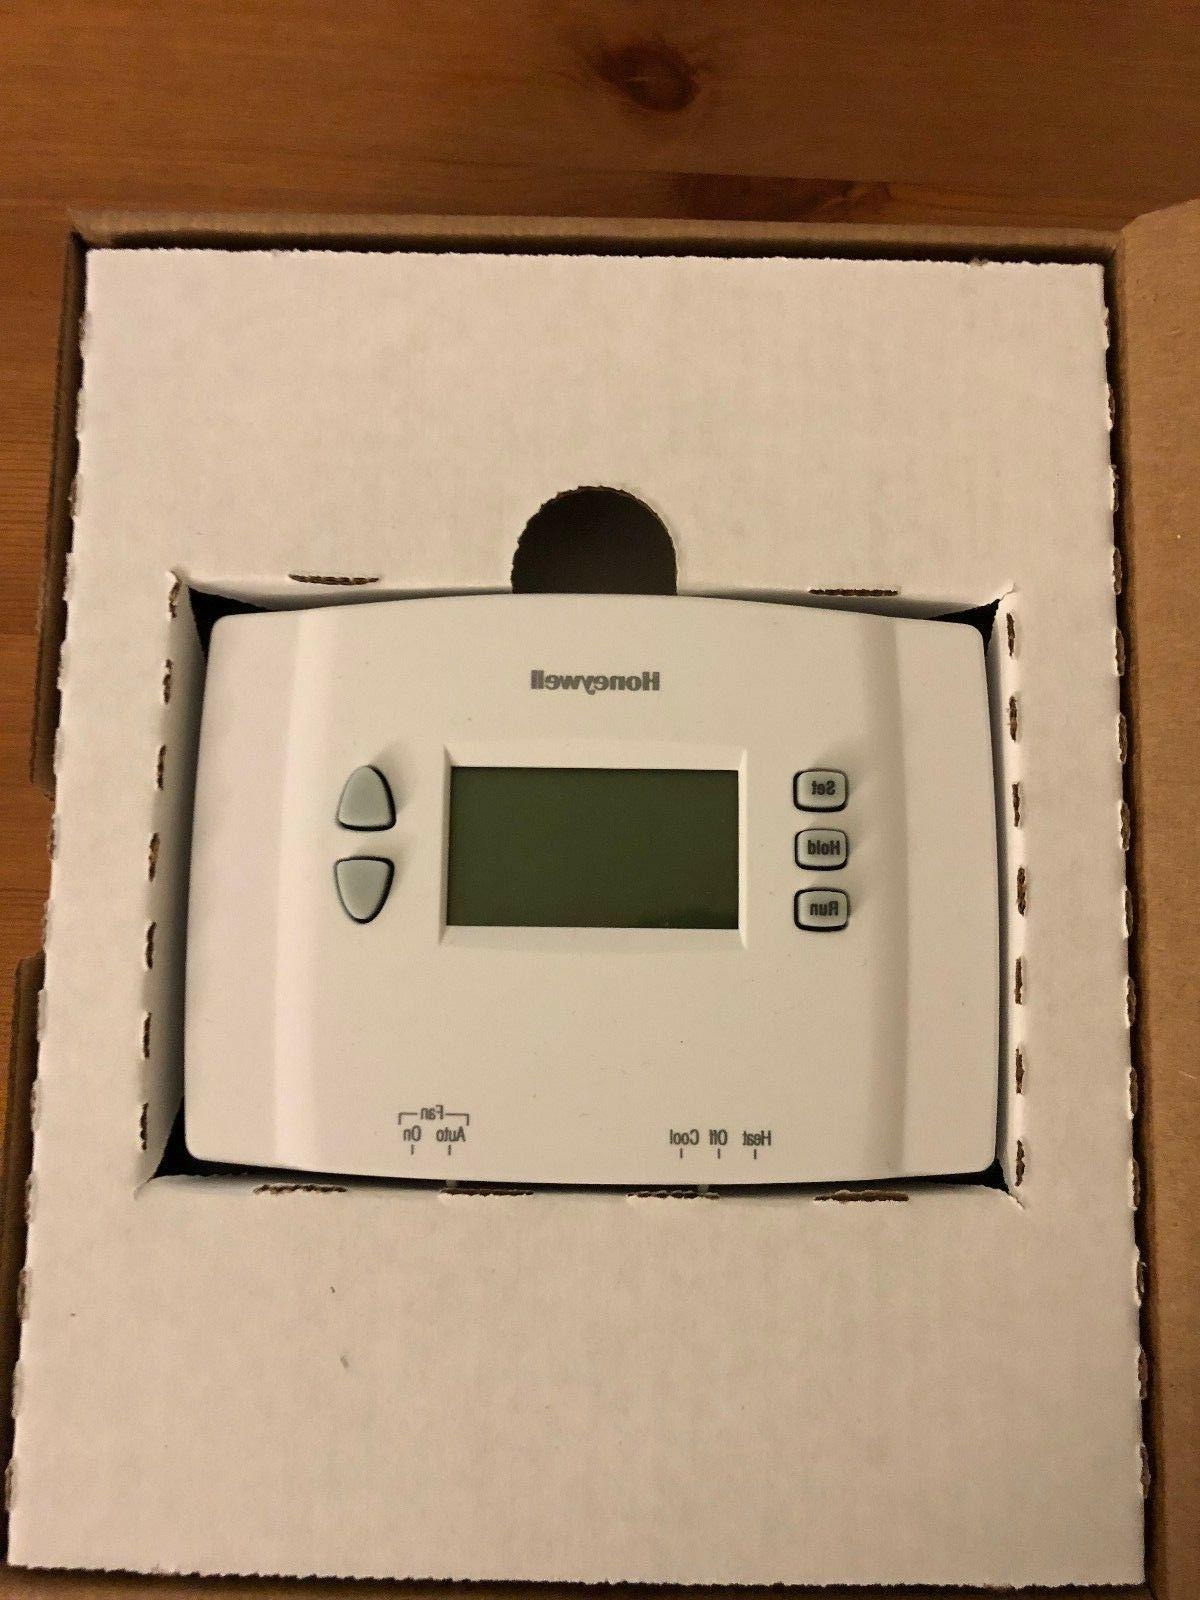 Honeywell RTH221B1021/E1 Week Programmable Thermostat